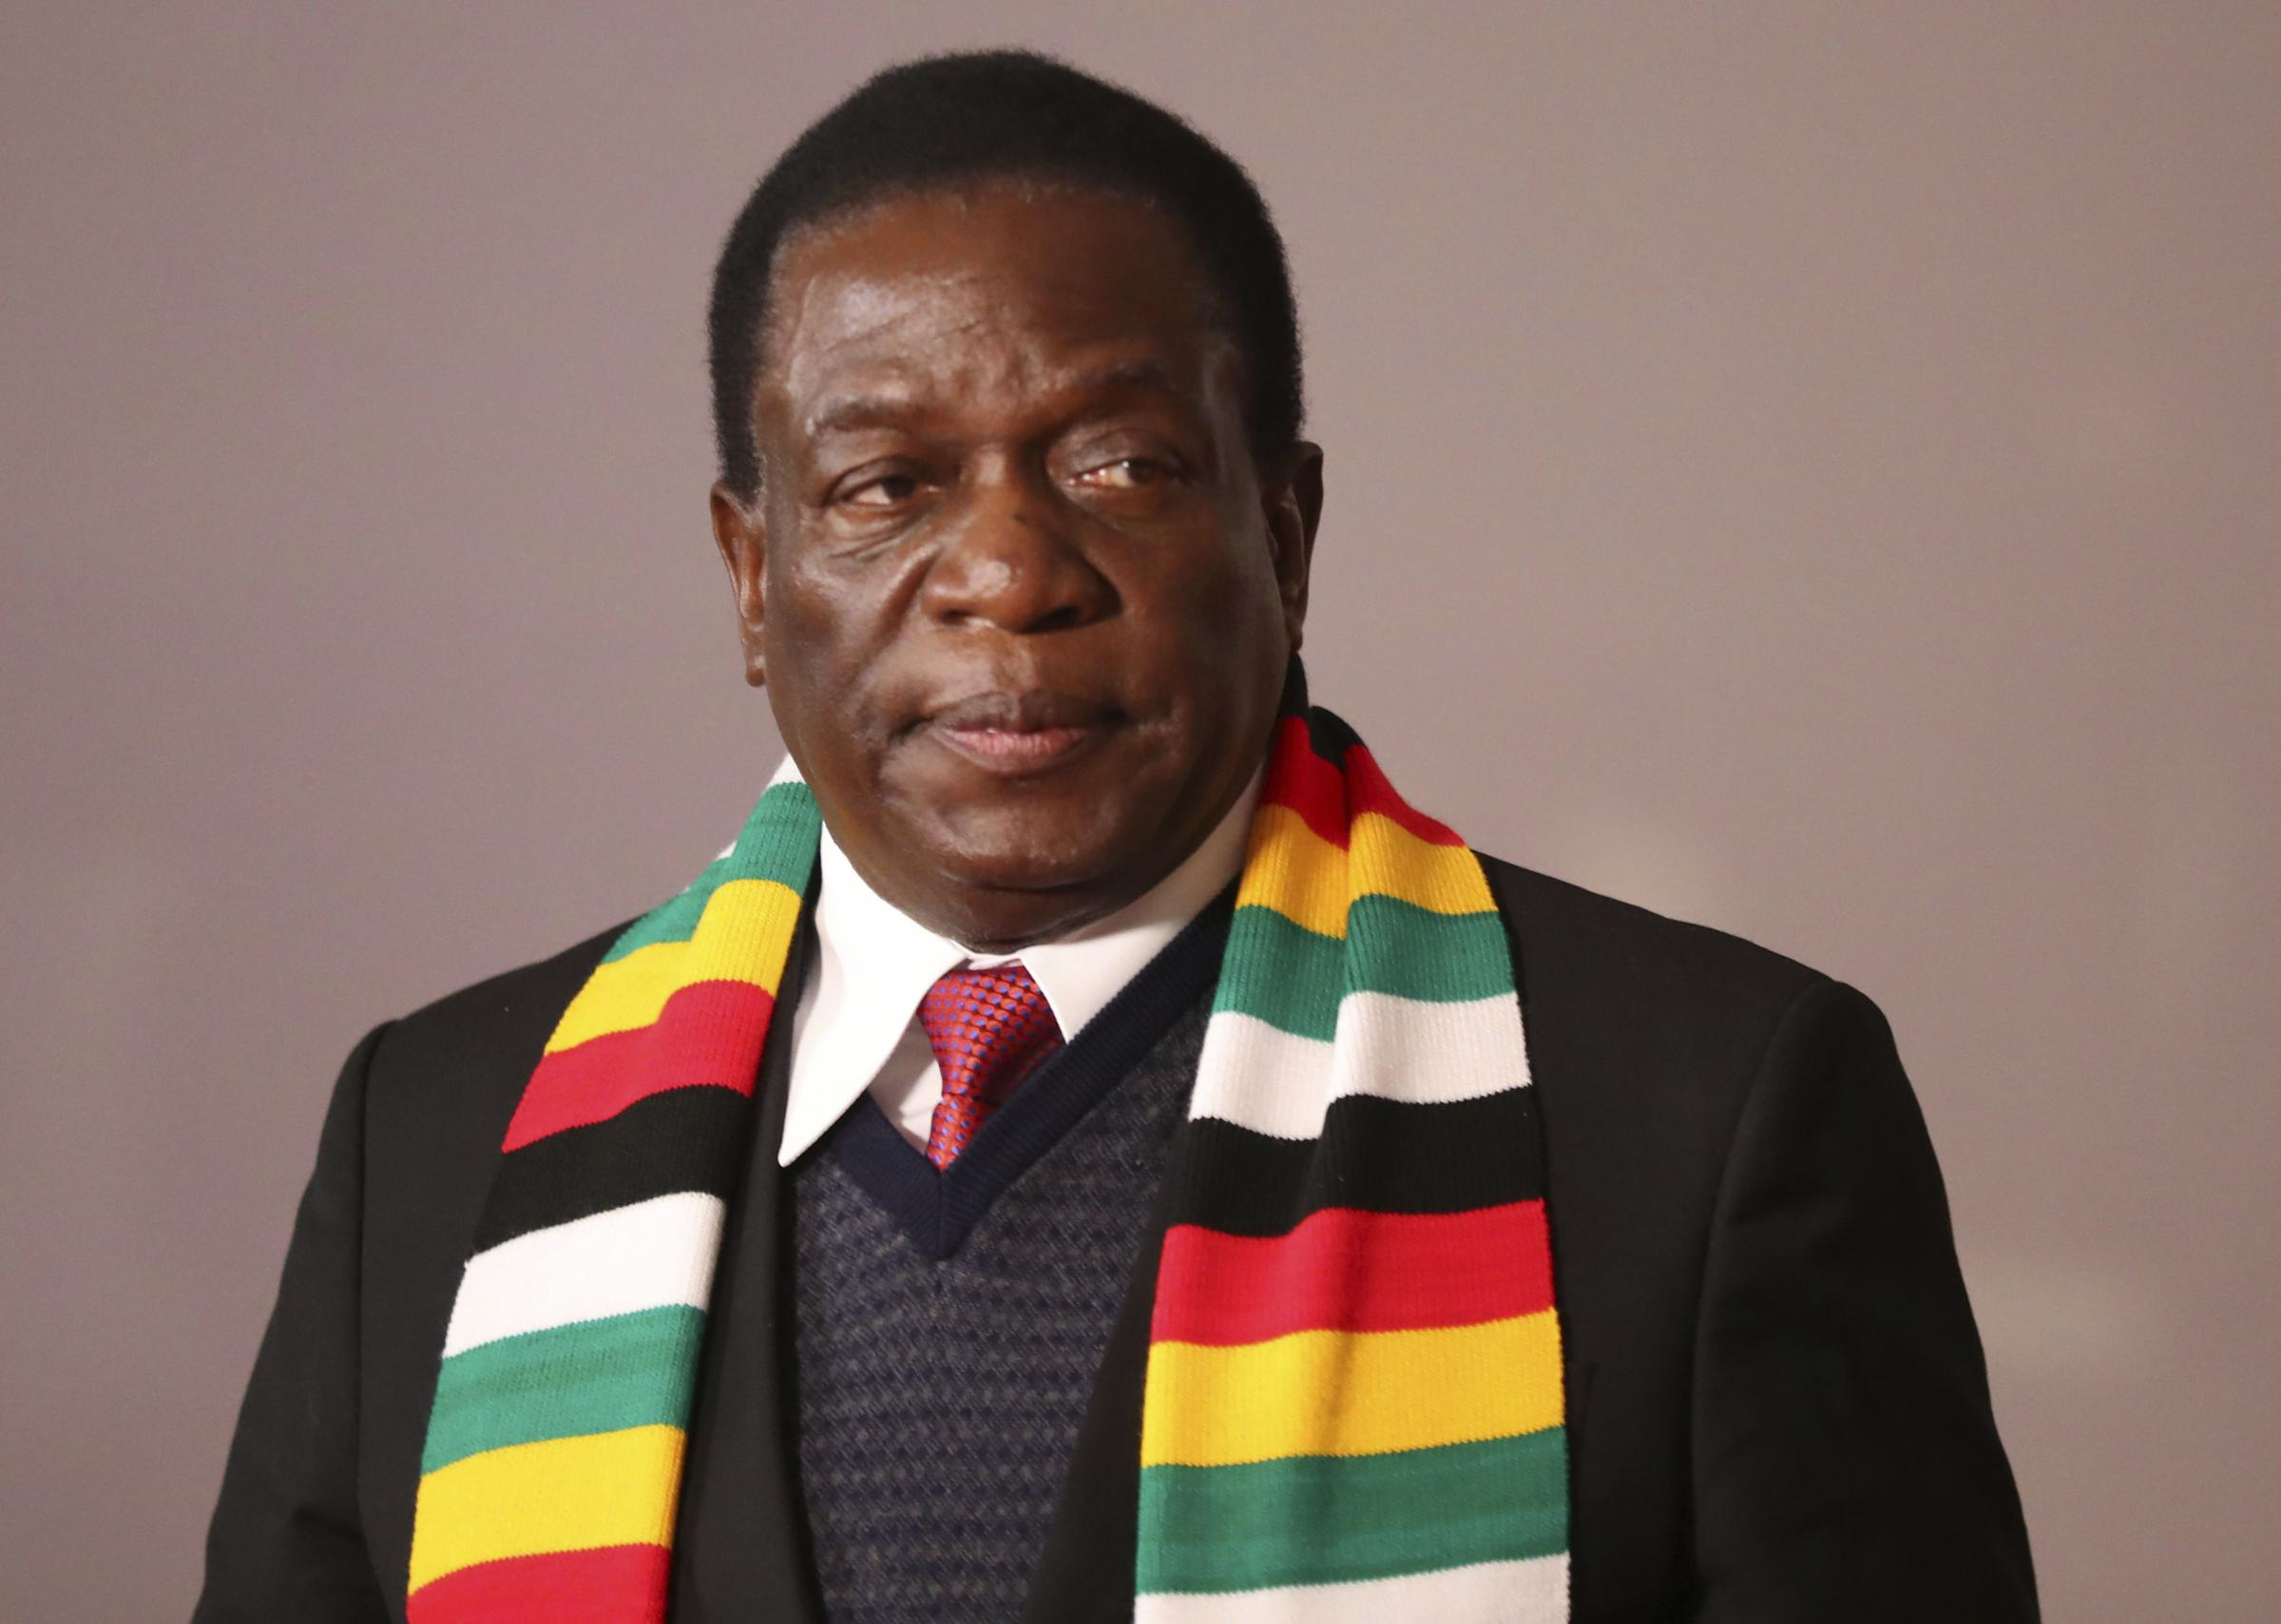 Zimbabwe's president Emmerson Mnangagwa vowed to fight the disease